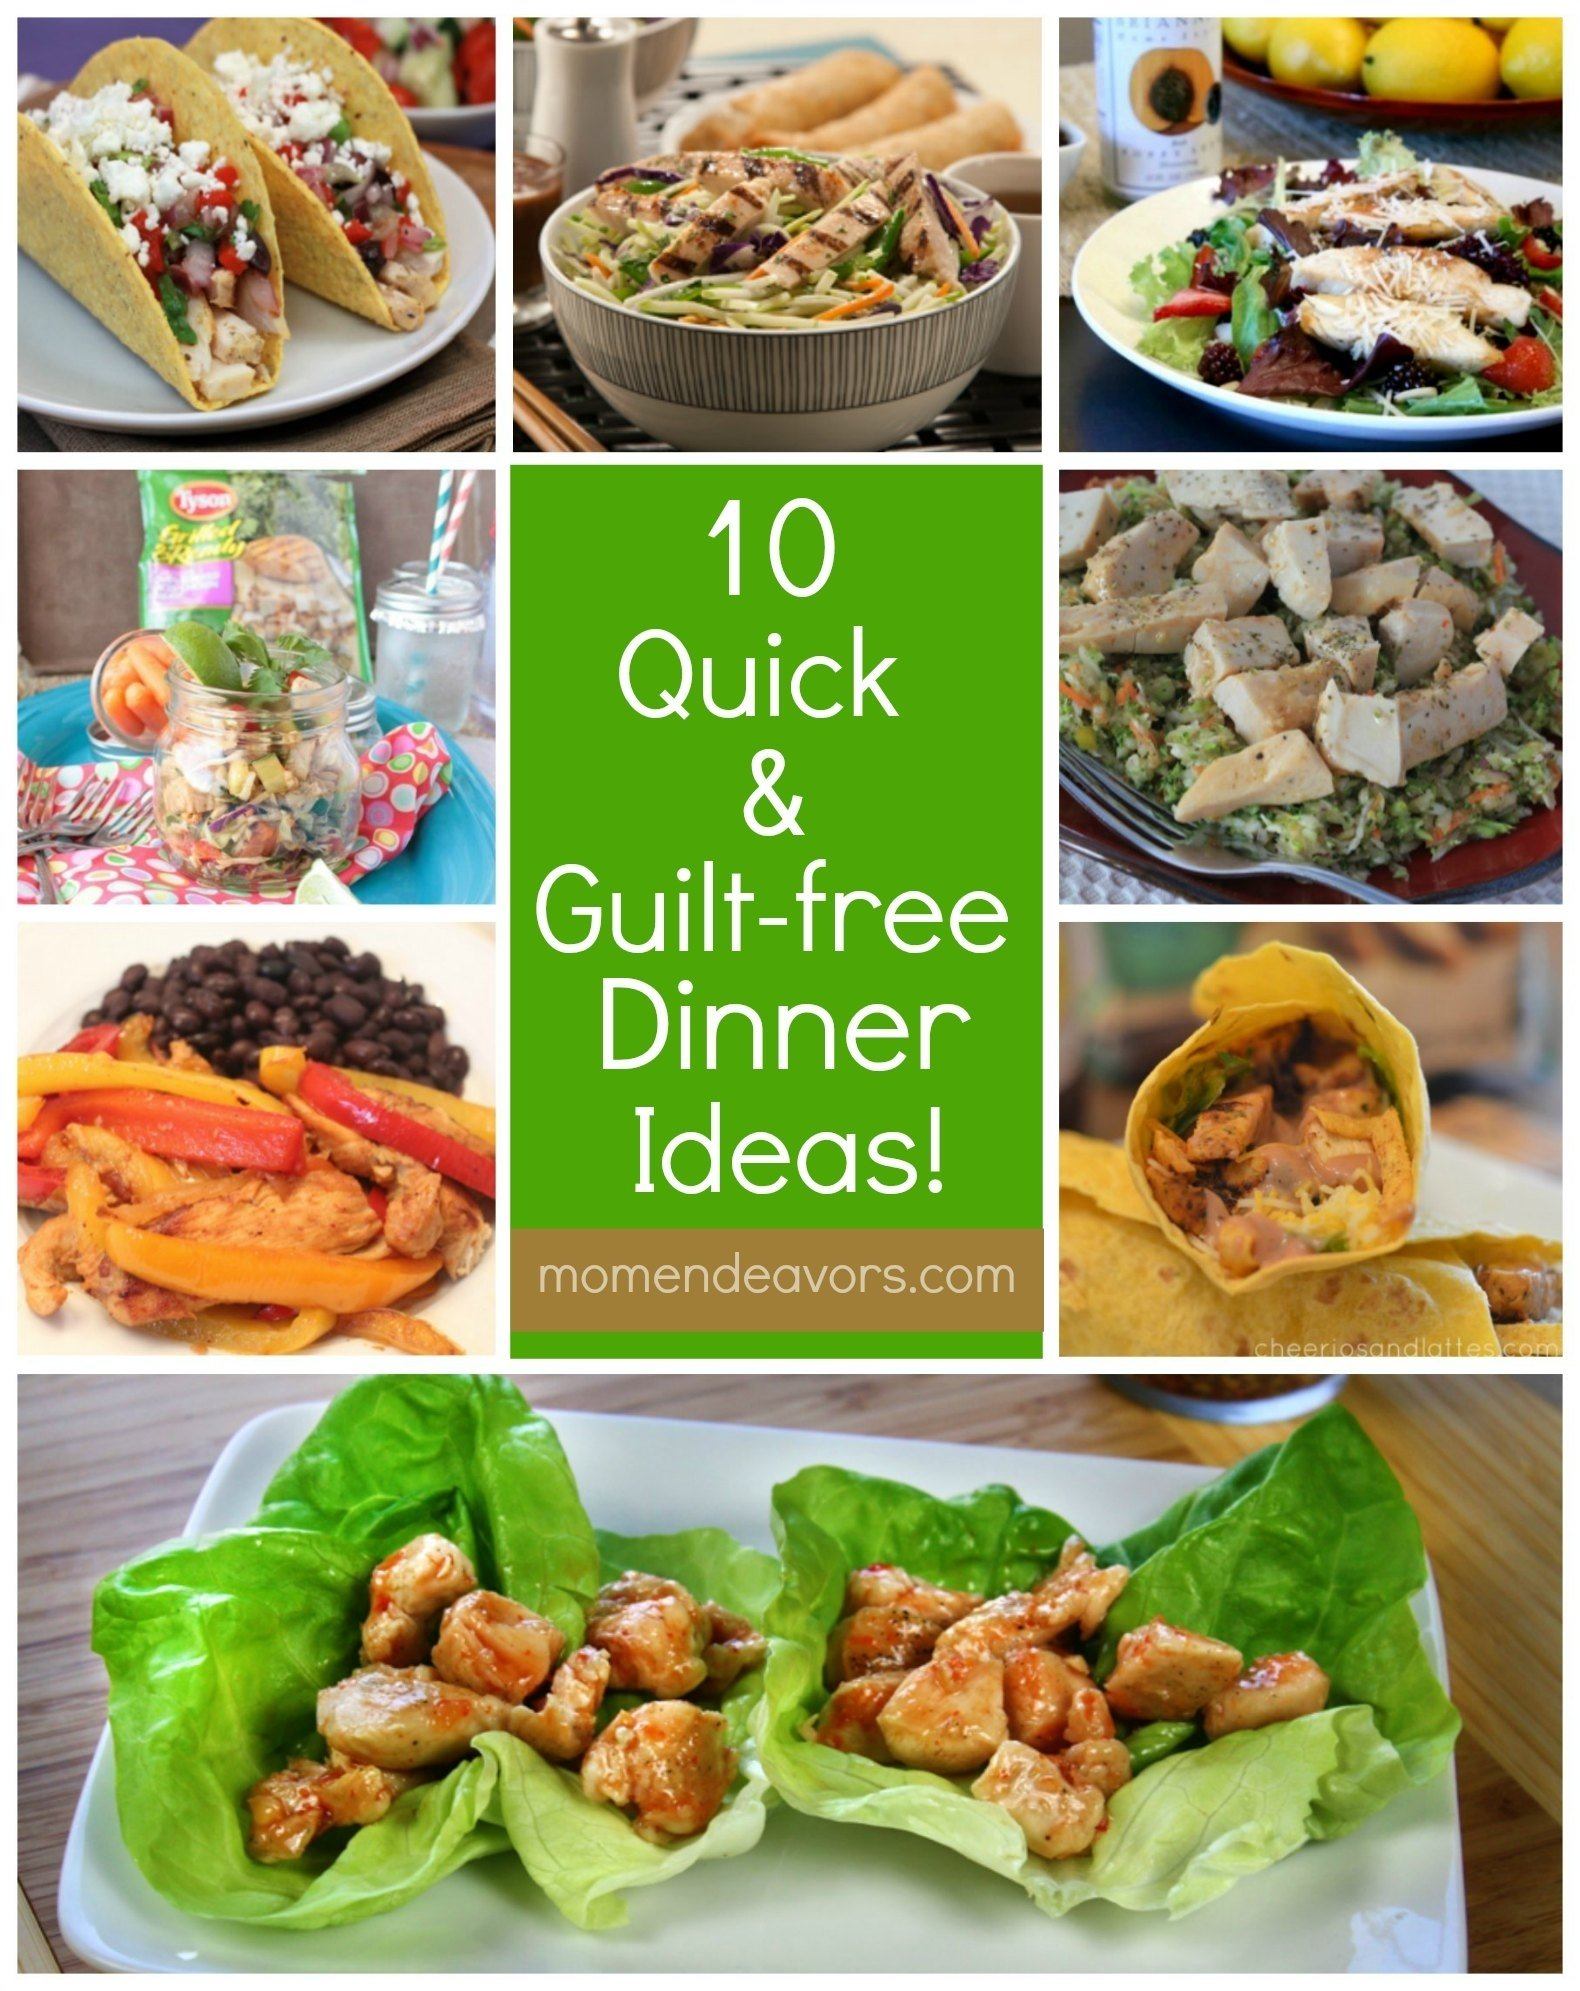 10 Unique Fast Dinner Ideas For Family 10 quick guilt free dinner ideas with tyson grilled ready 2020